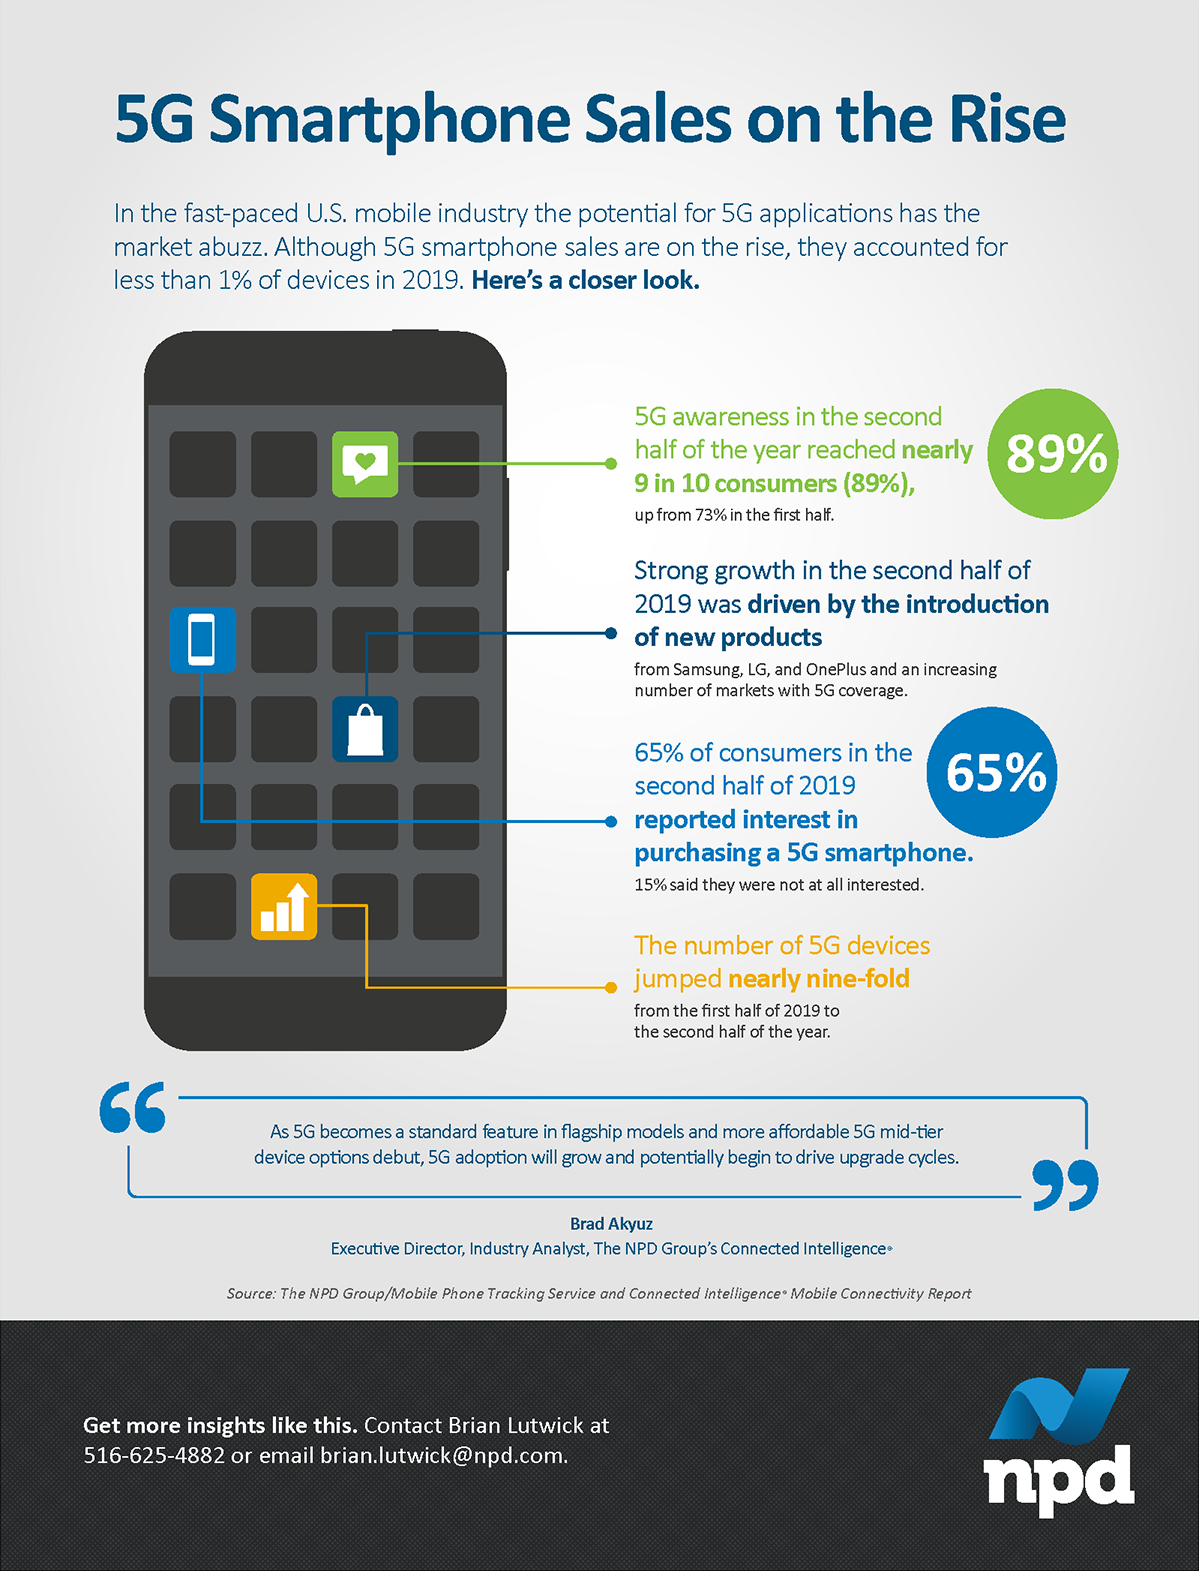 In the fast-paced U.S. mobile industry the potential for 5G applications has the market abuzz.